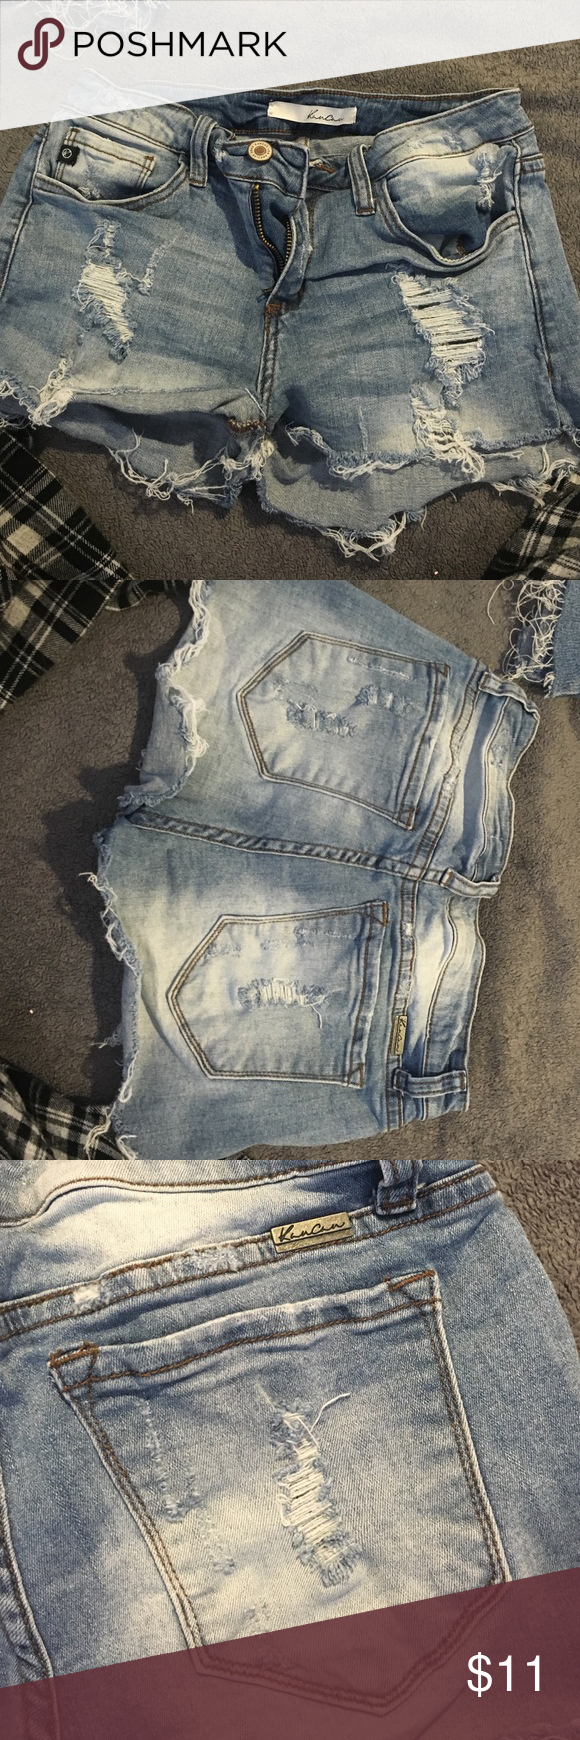 Jean shorts Frayed shorts. Slight acid wash. Worn a few times. Great condition Shorts